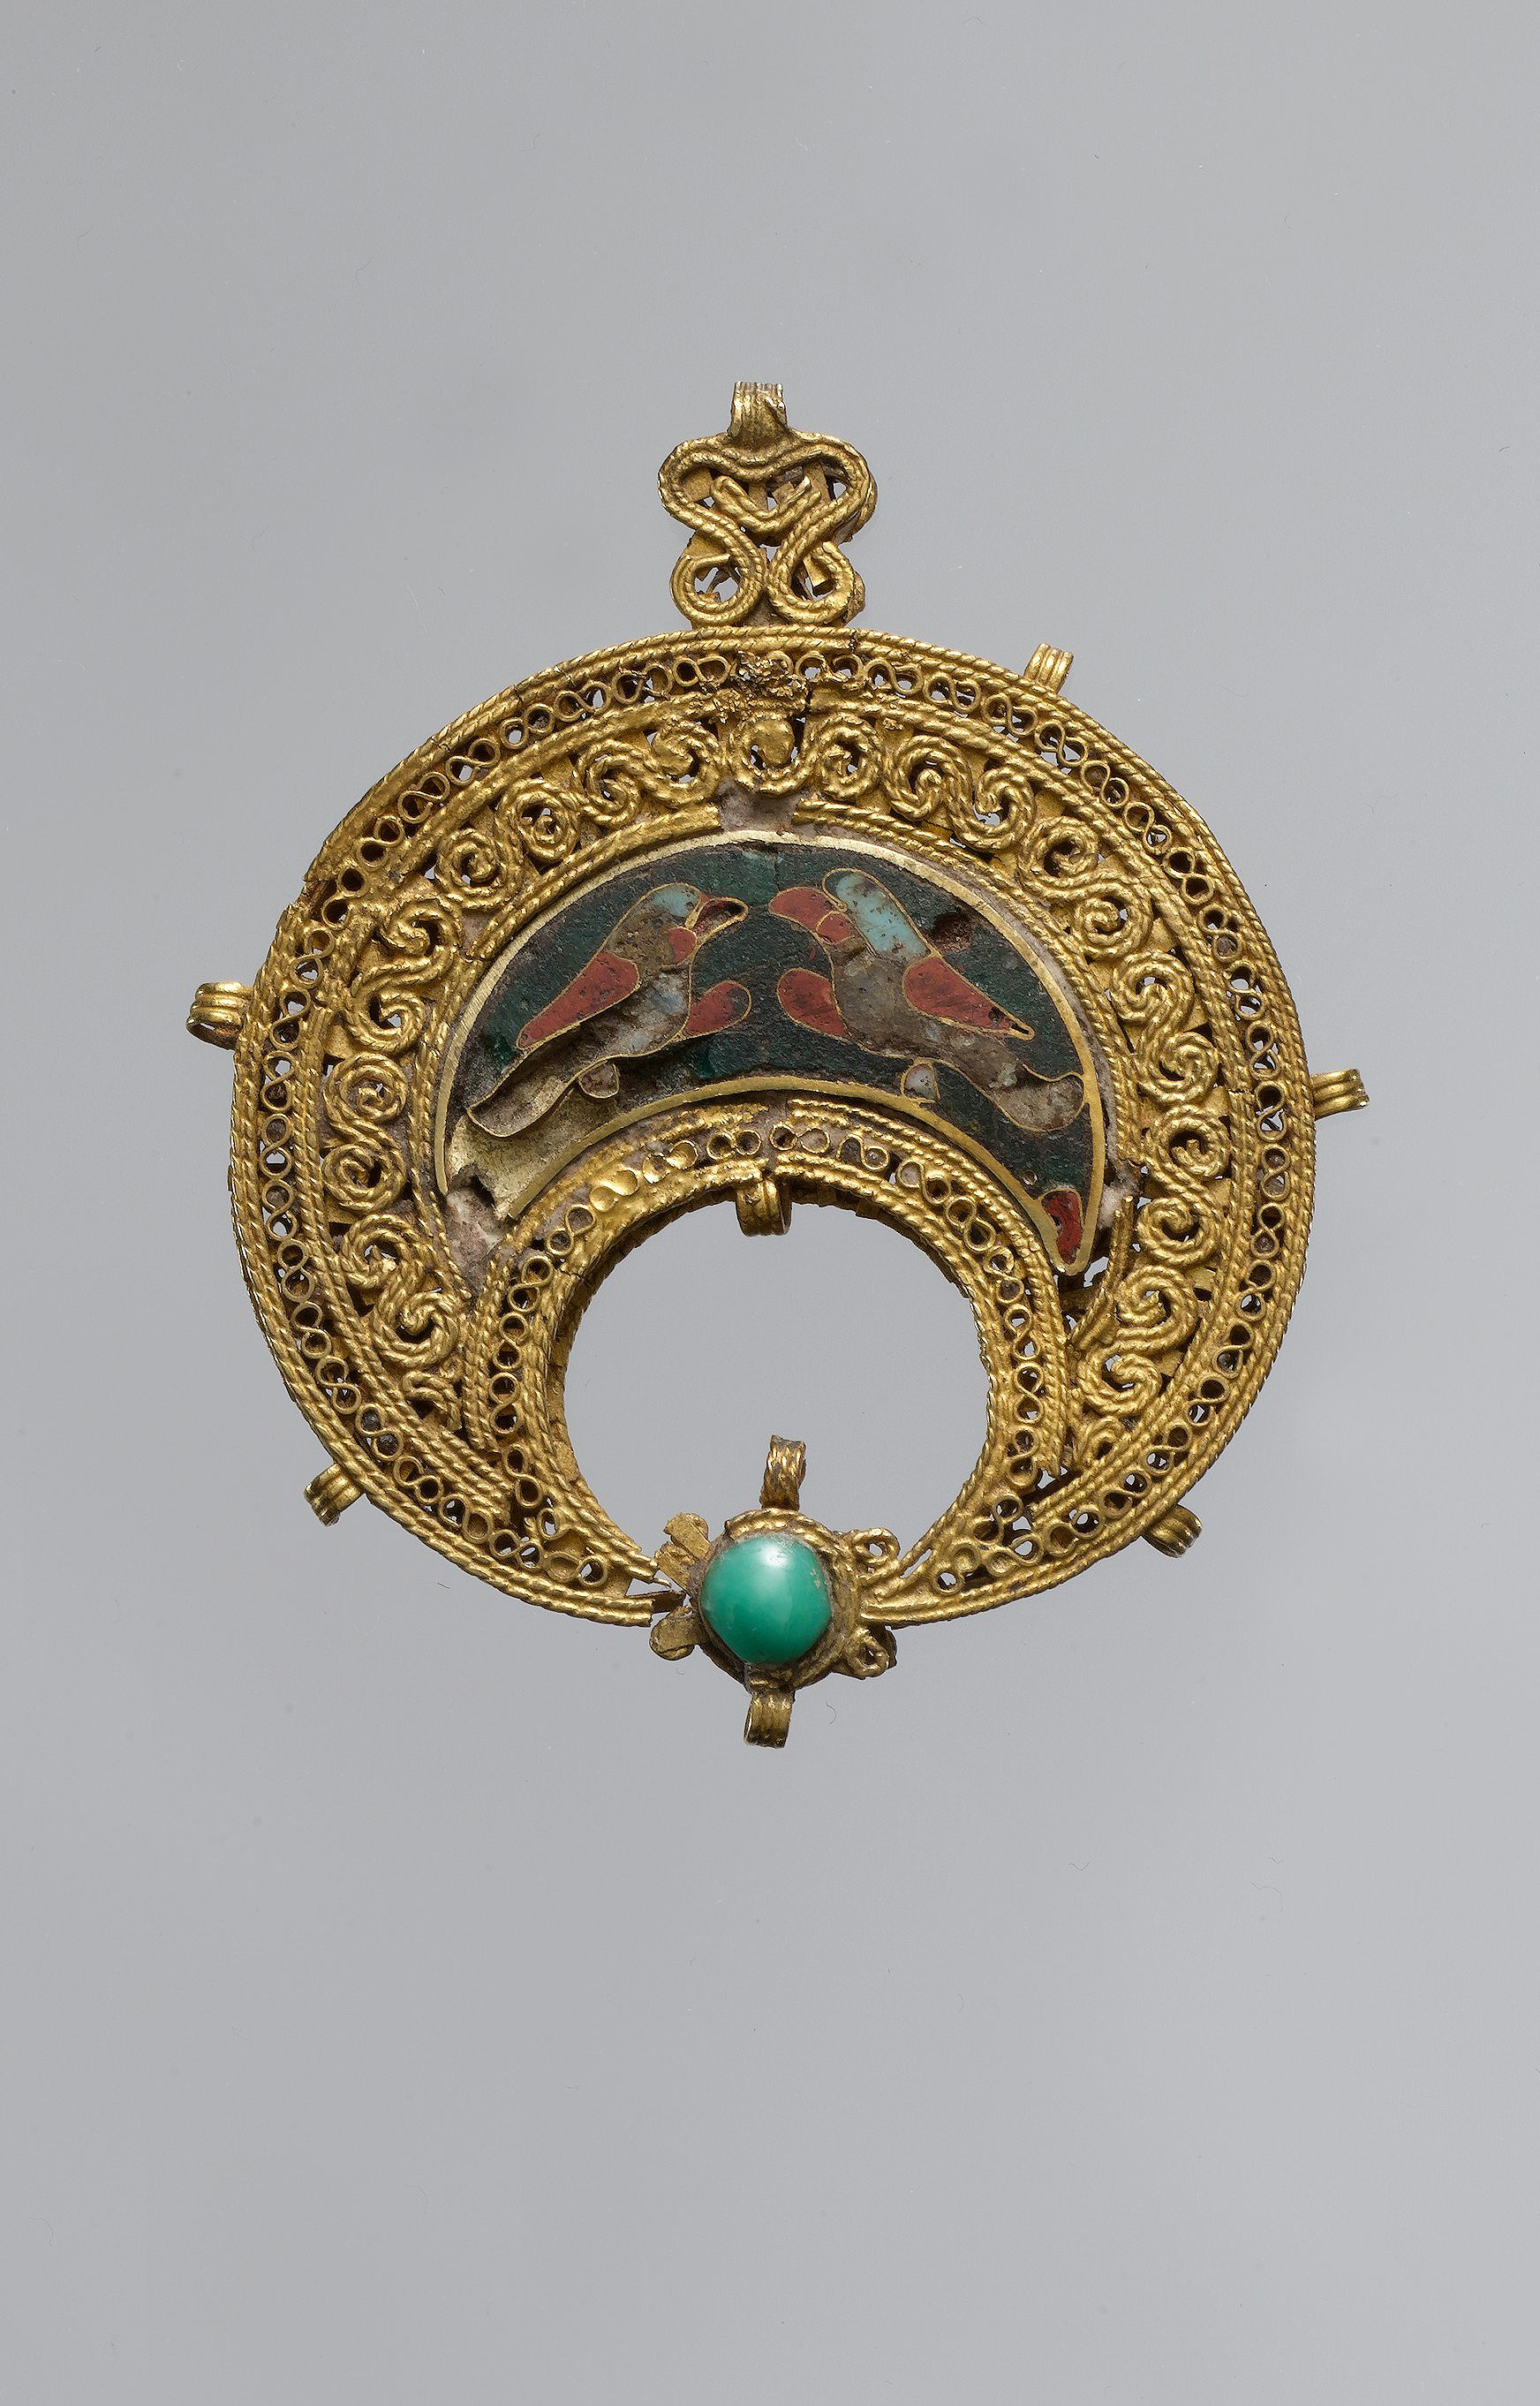 Crescent-Shaped Pendant with Confronted Birds 11th century EgyptCulture, IslamicMedium: Gold, cloisonné enamel, turquoise; filigree